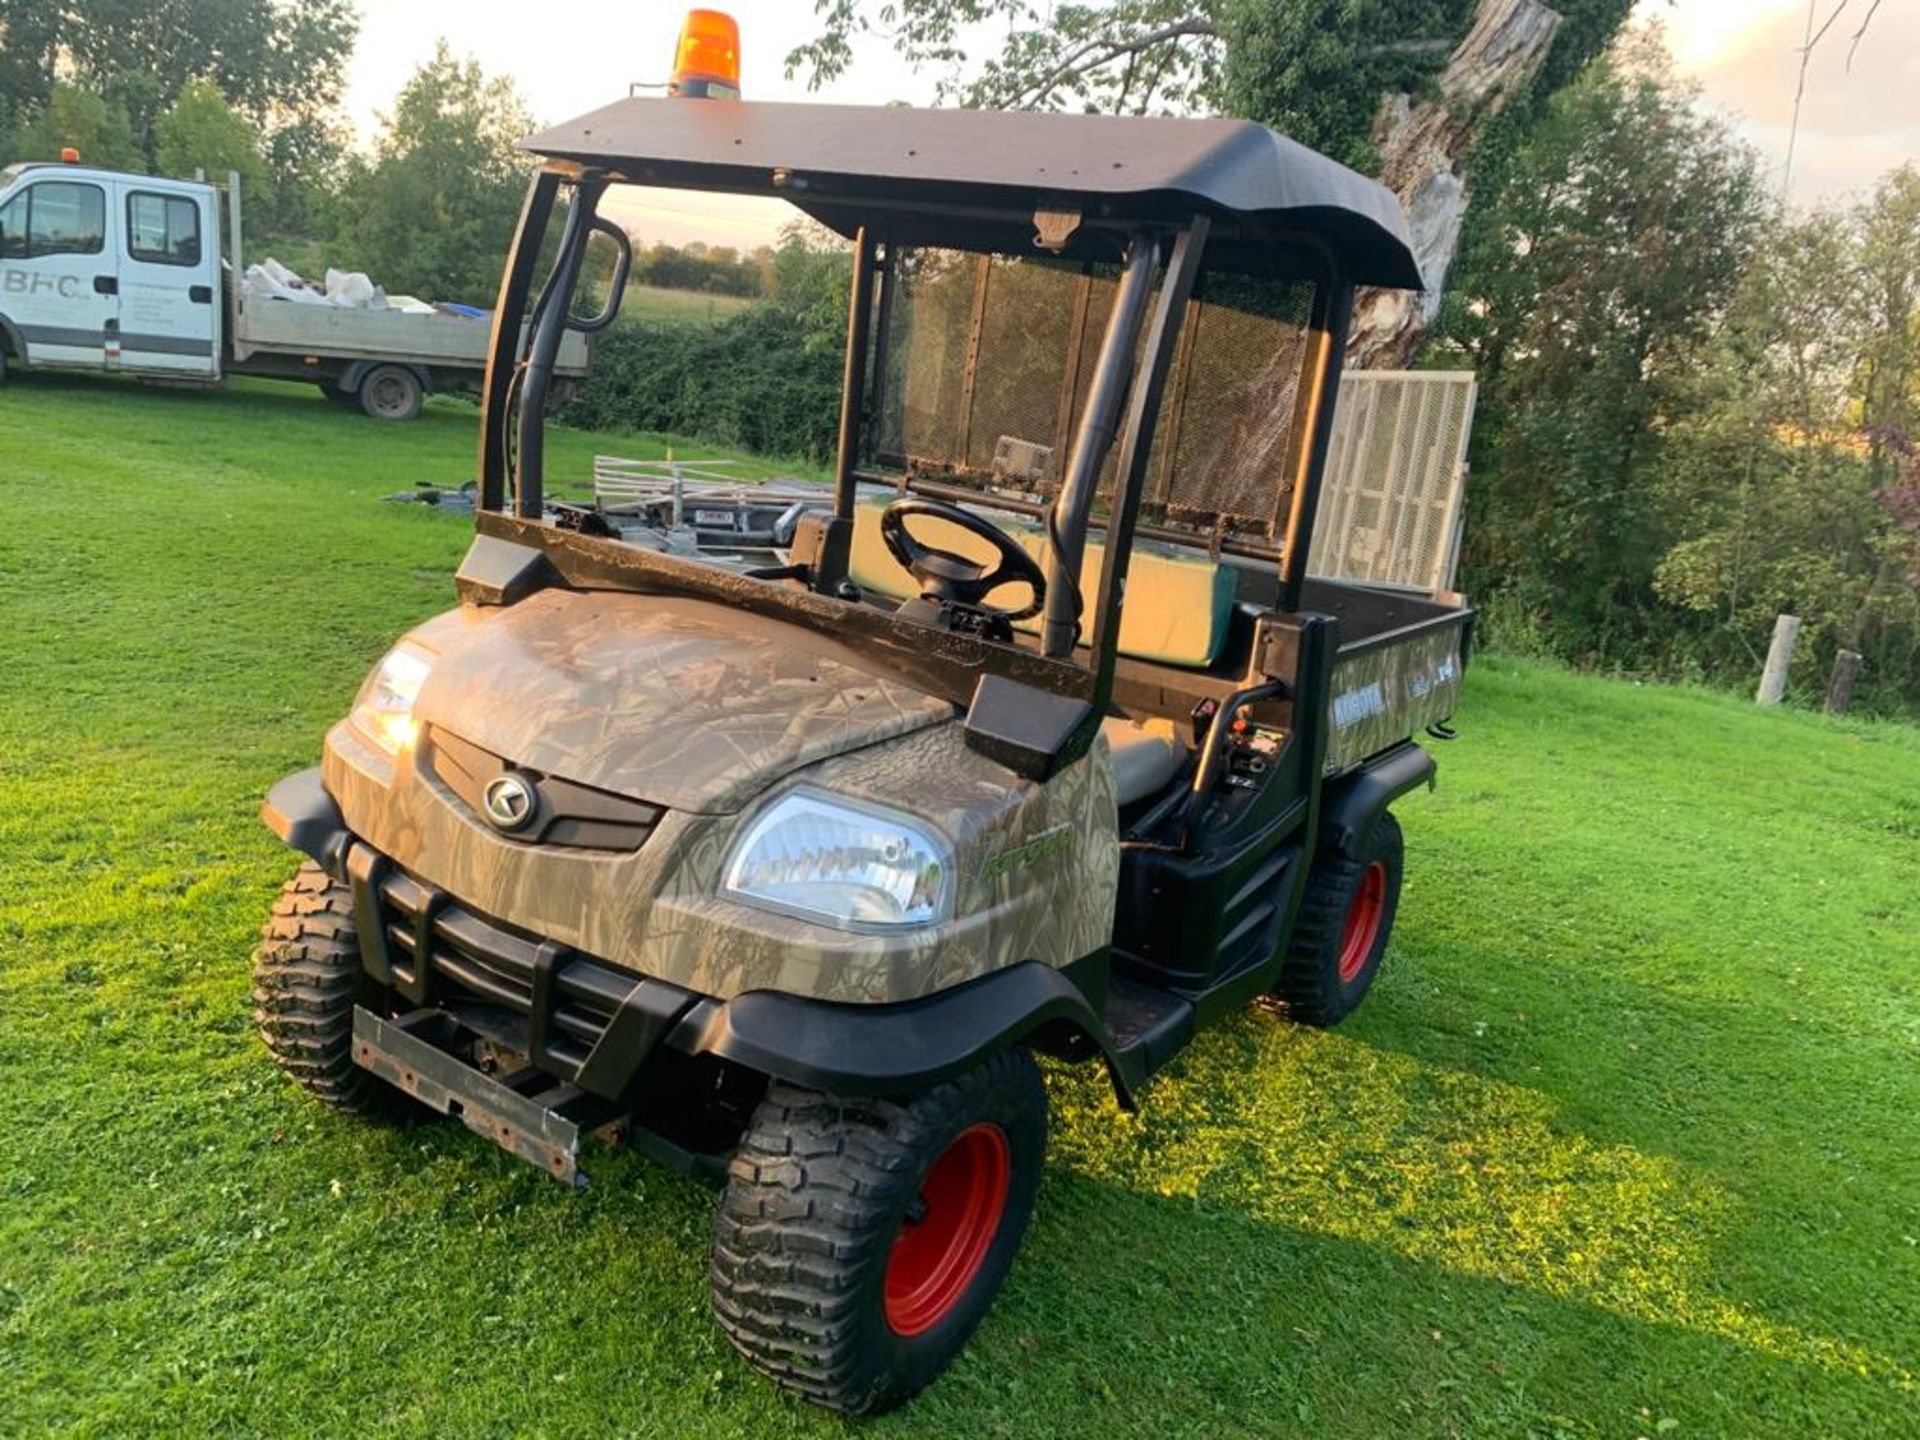 KUBOTA 4X4 DIESEL HYDRAULIC TIPPER BUGGY, RUNS, WORKS AND TIPS *PLUS VAT* - Image 5 of 22